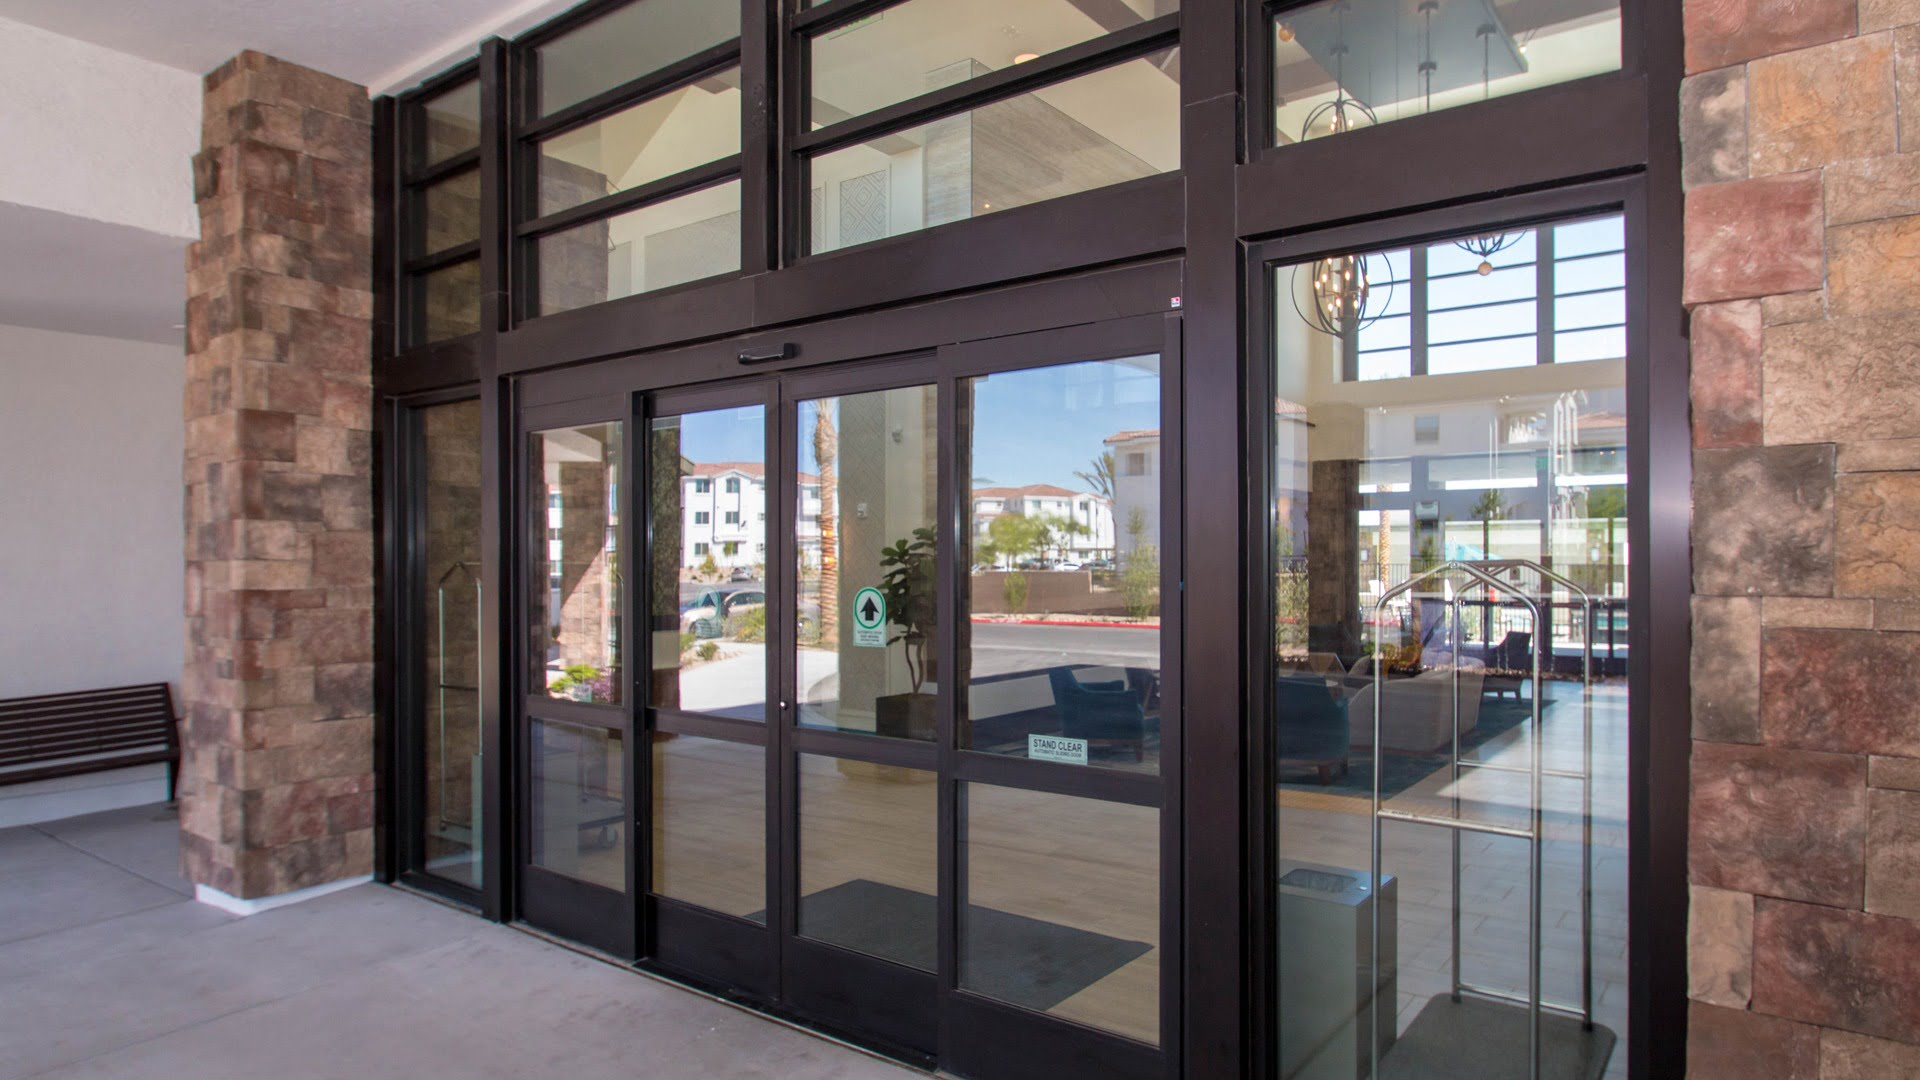 Brown aluminum commercial windows near hotel entry